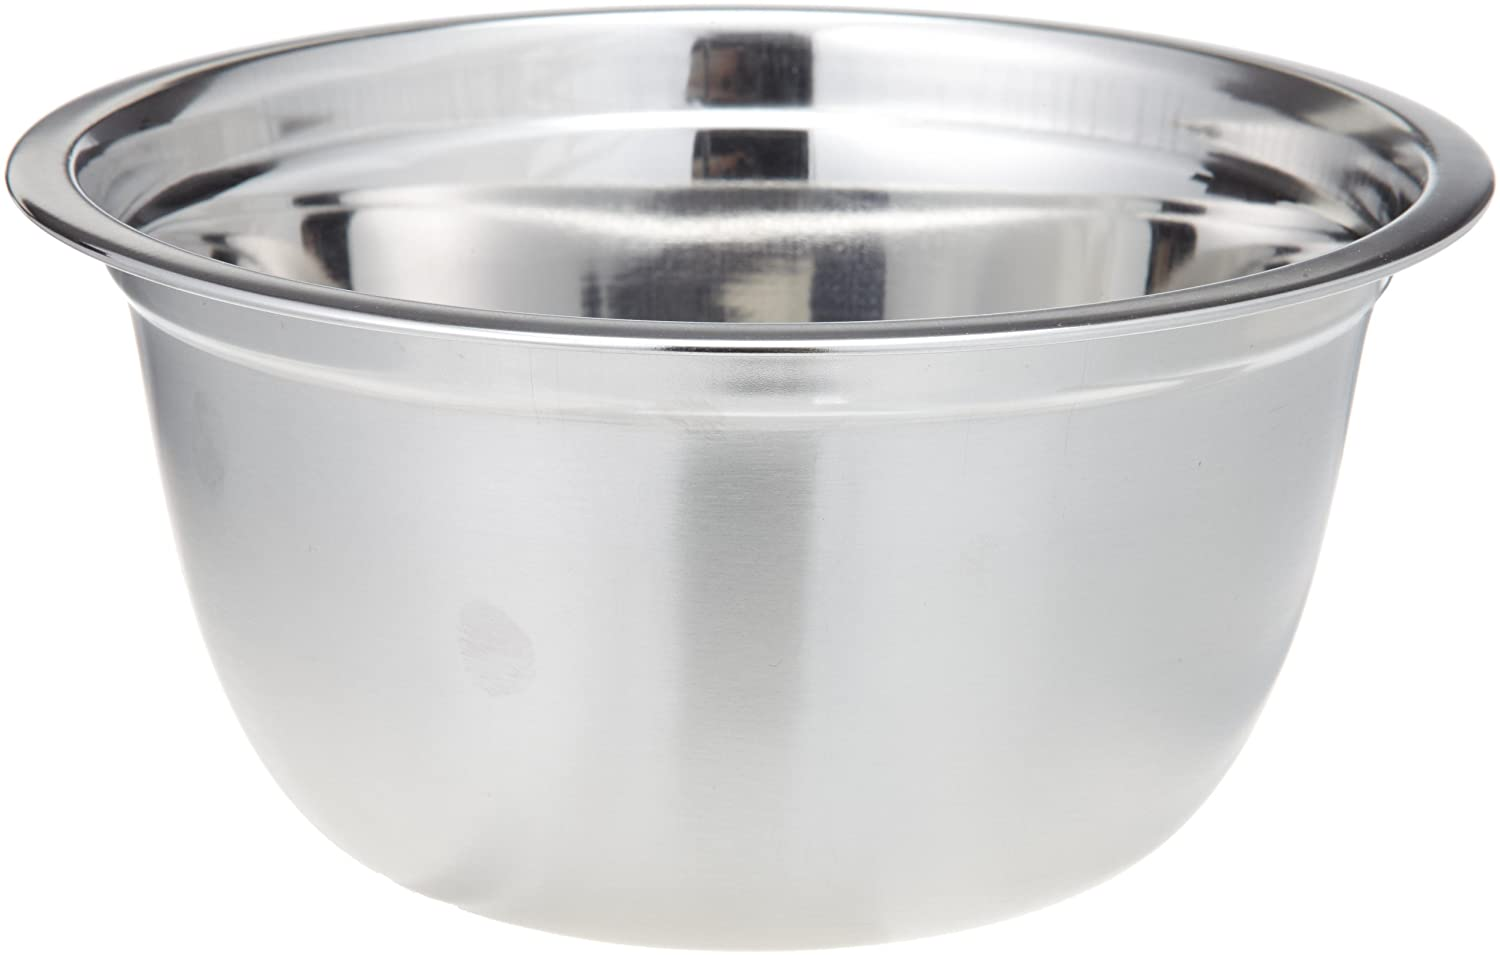 ExcelSteel 321 3-Quart Stainless Steel Mixing Bowl